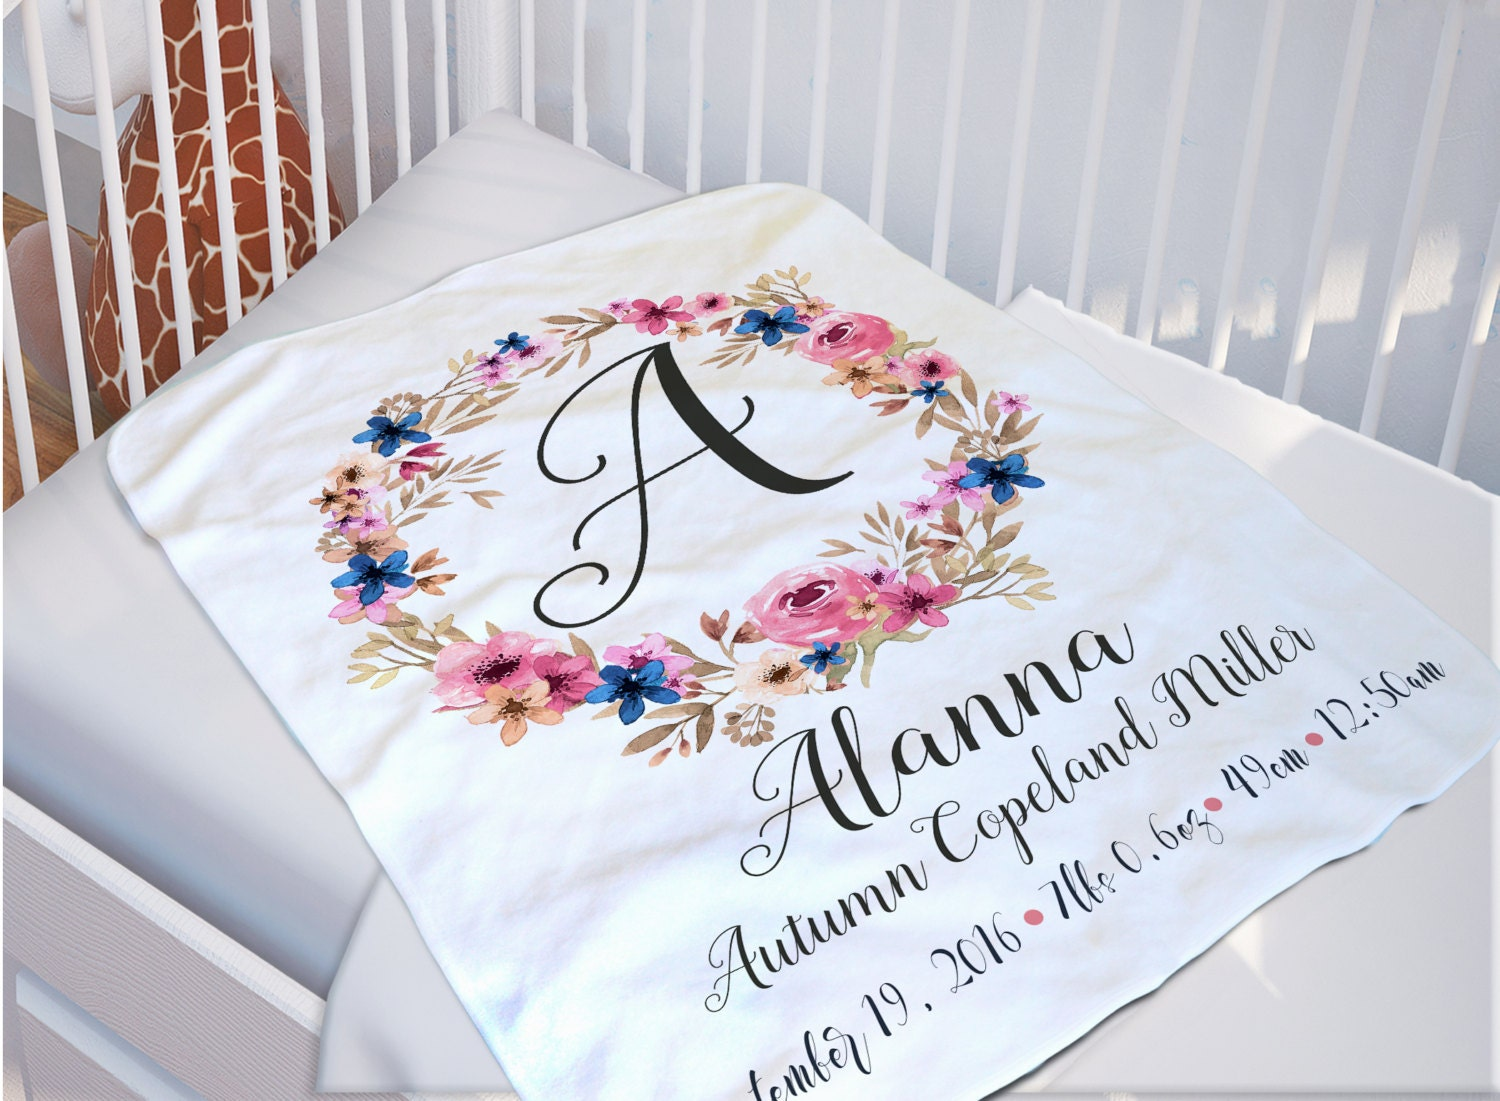 Baby Monogrammed Blanket Baby Name Blanket by SoulStudioPrints